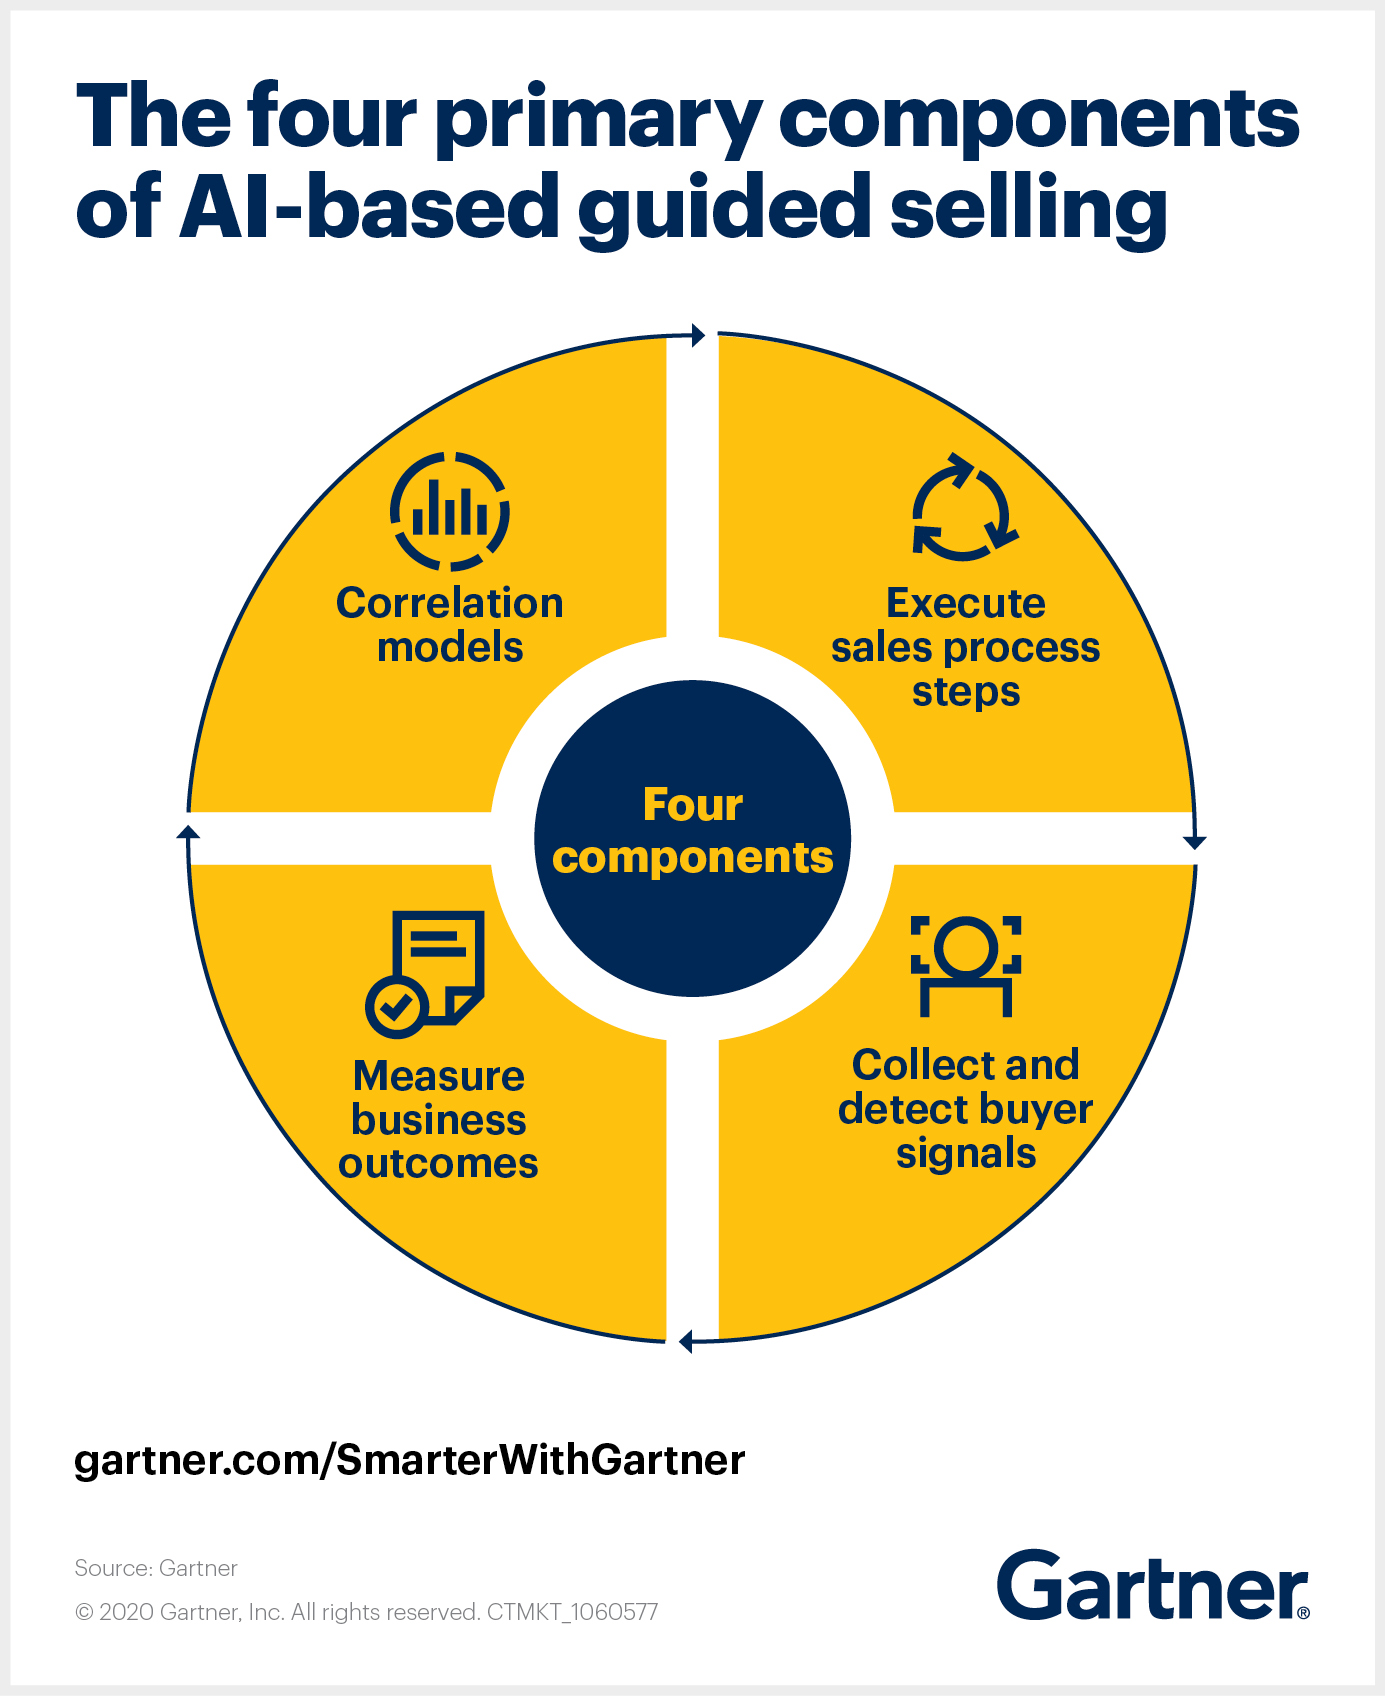 Gartner outlines the four primary components of AI-based guided selling.